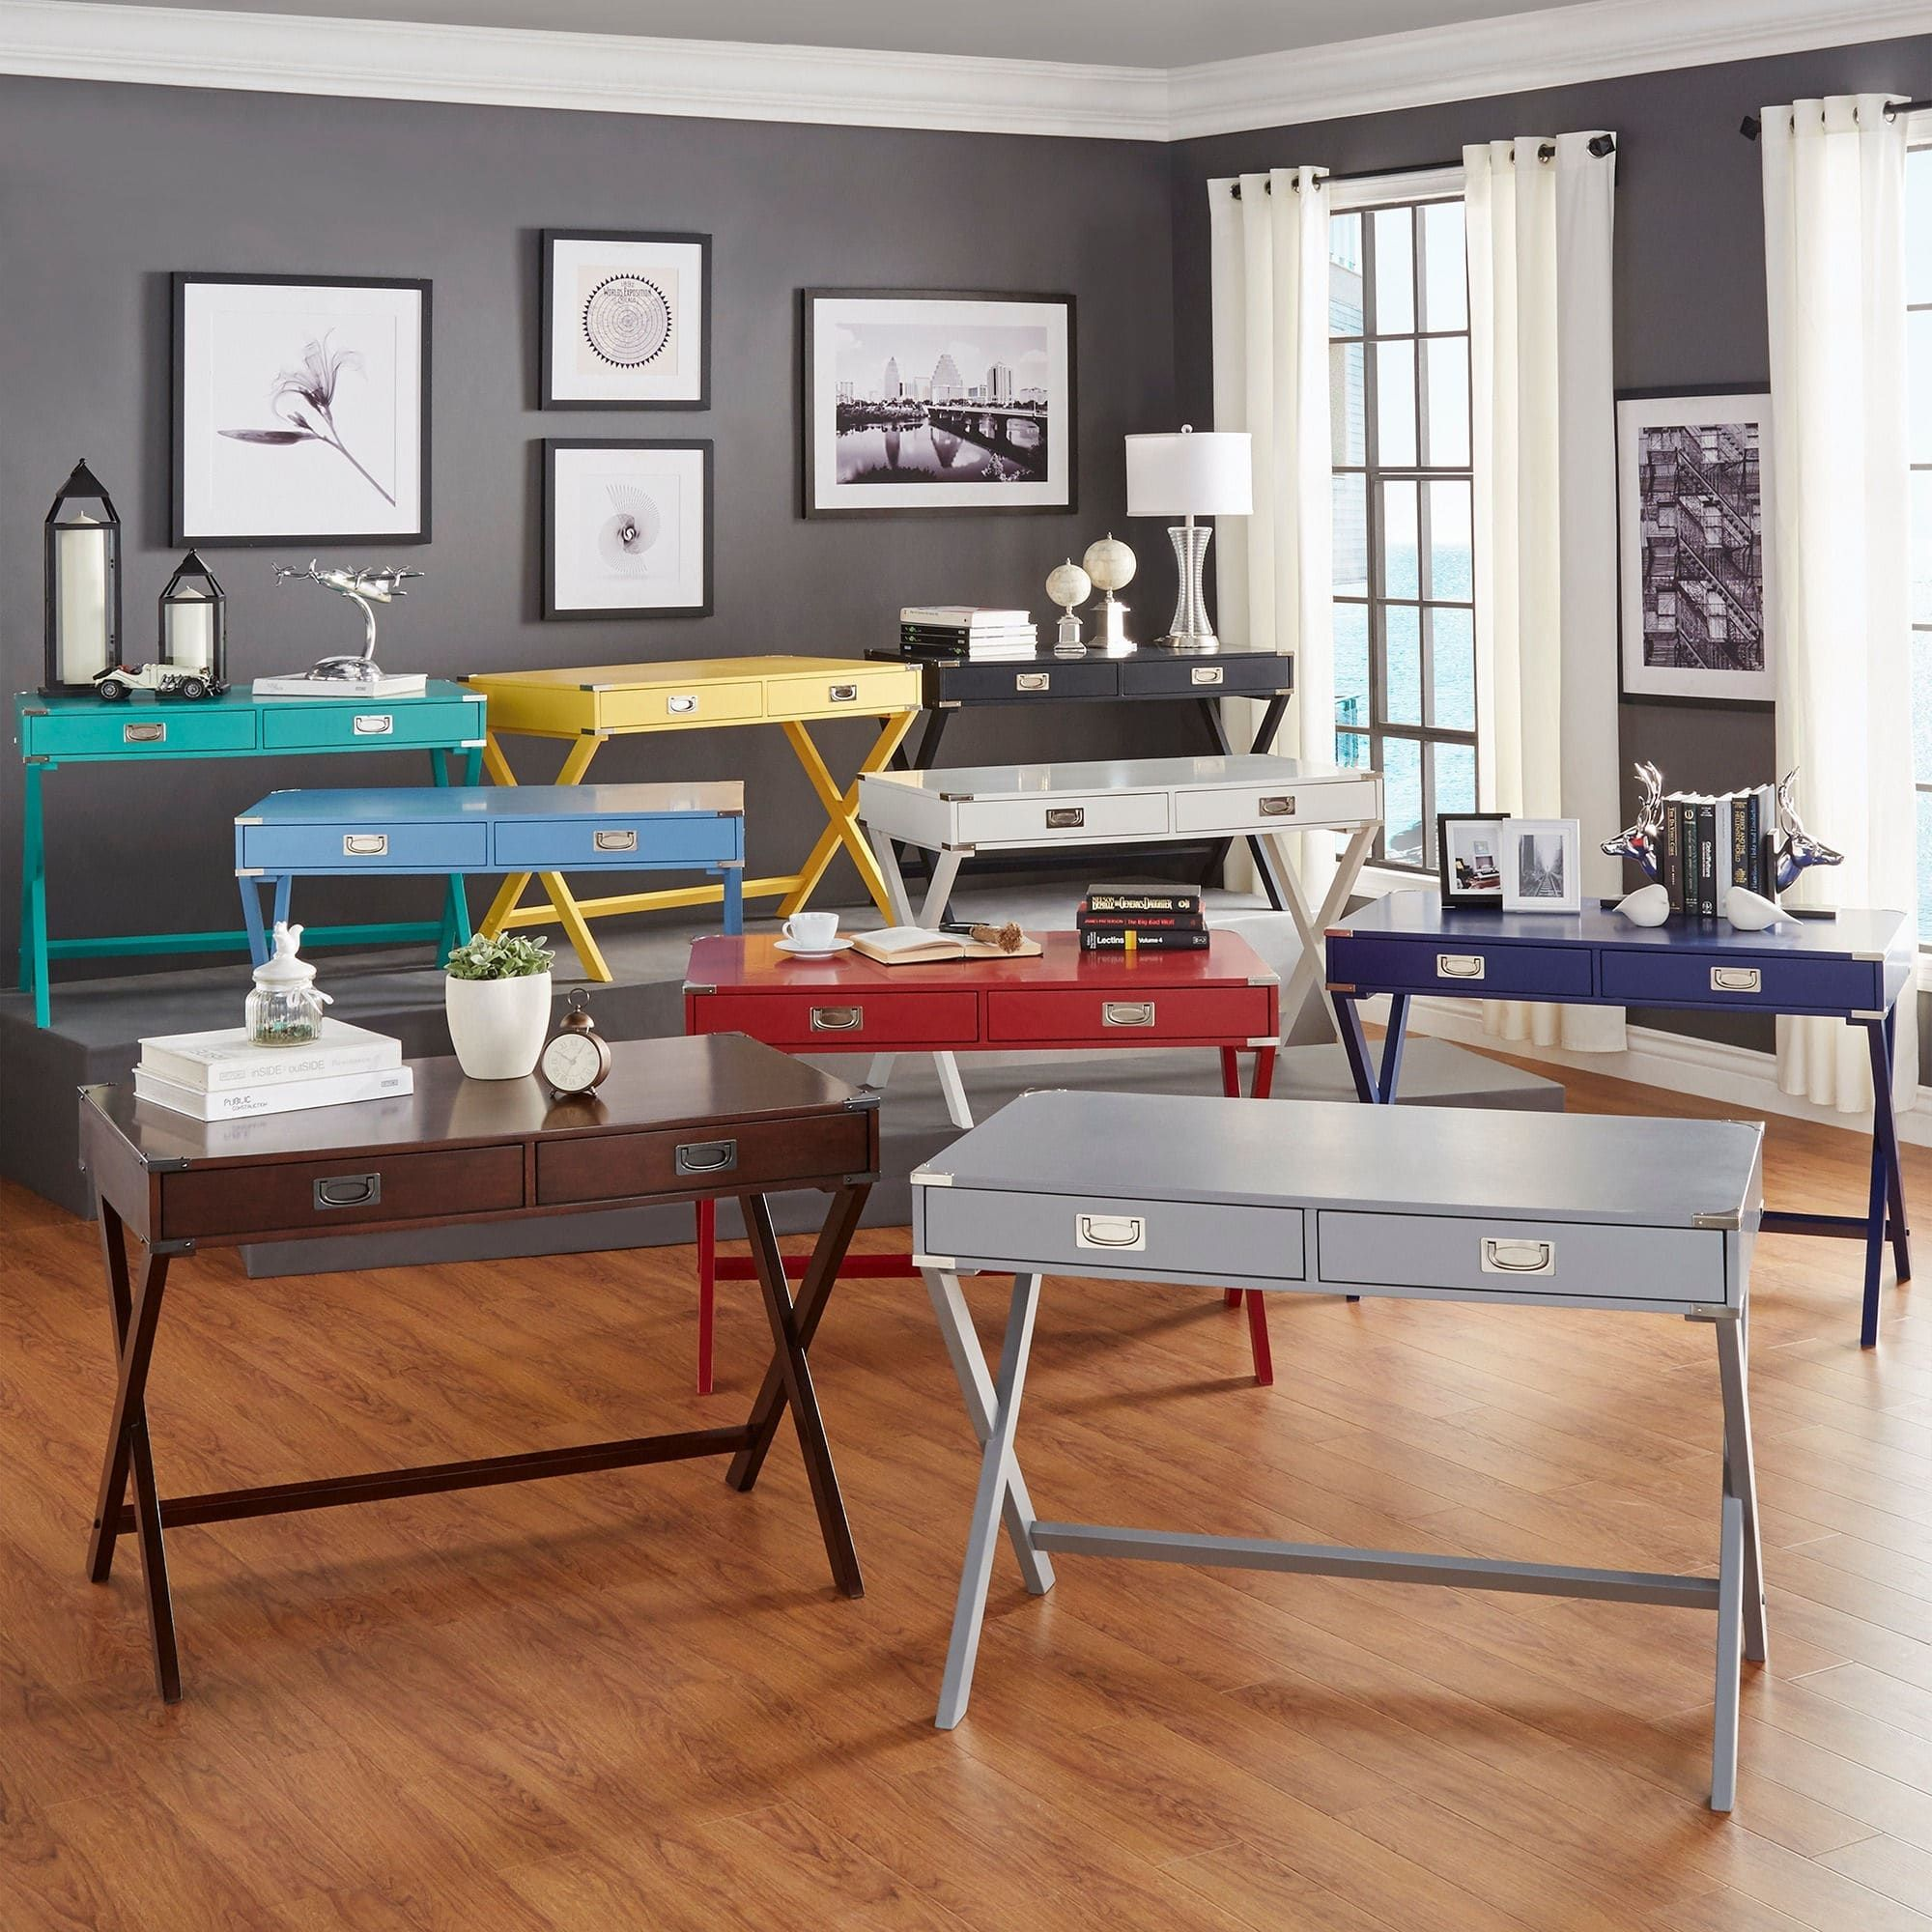 Kenton X Base Wood Accent Campaign Writing Desk iNSPIRE Q Modern |  Overstock.com Shopping